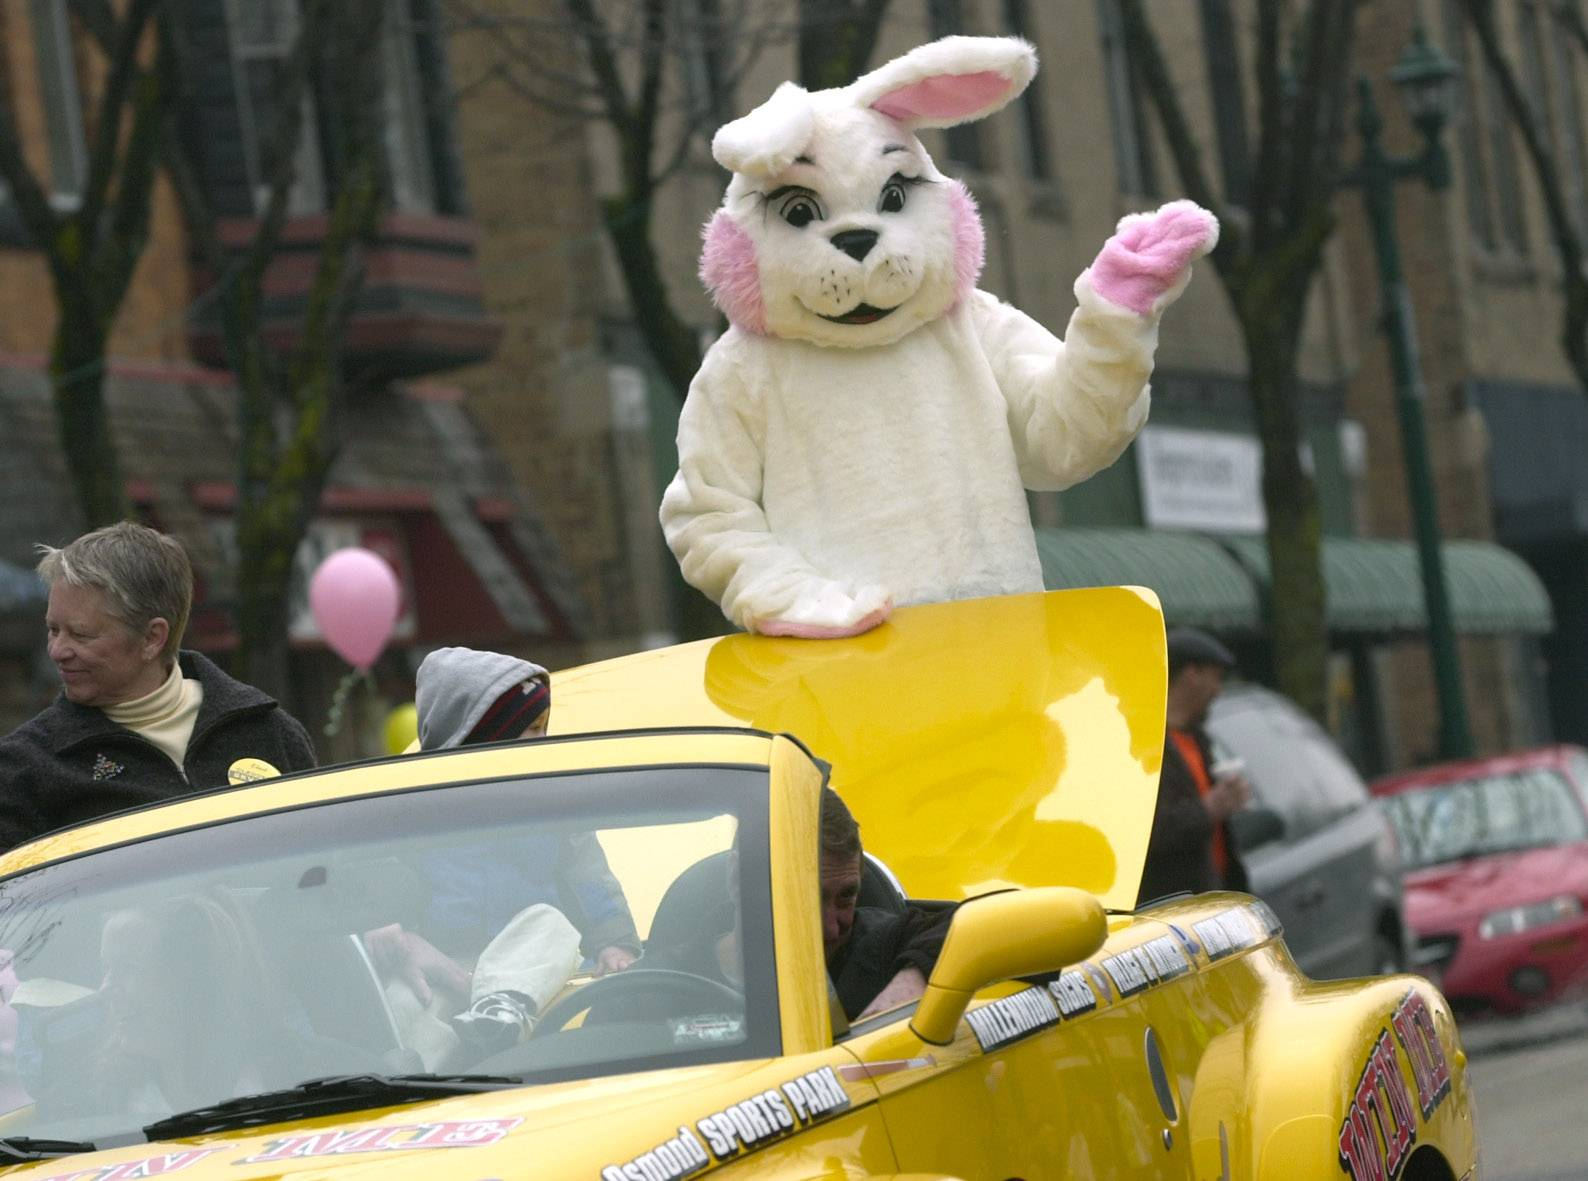 The Easter Bunny waives to children during a previous Easter parade through downtown Antioch.